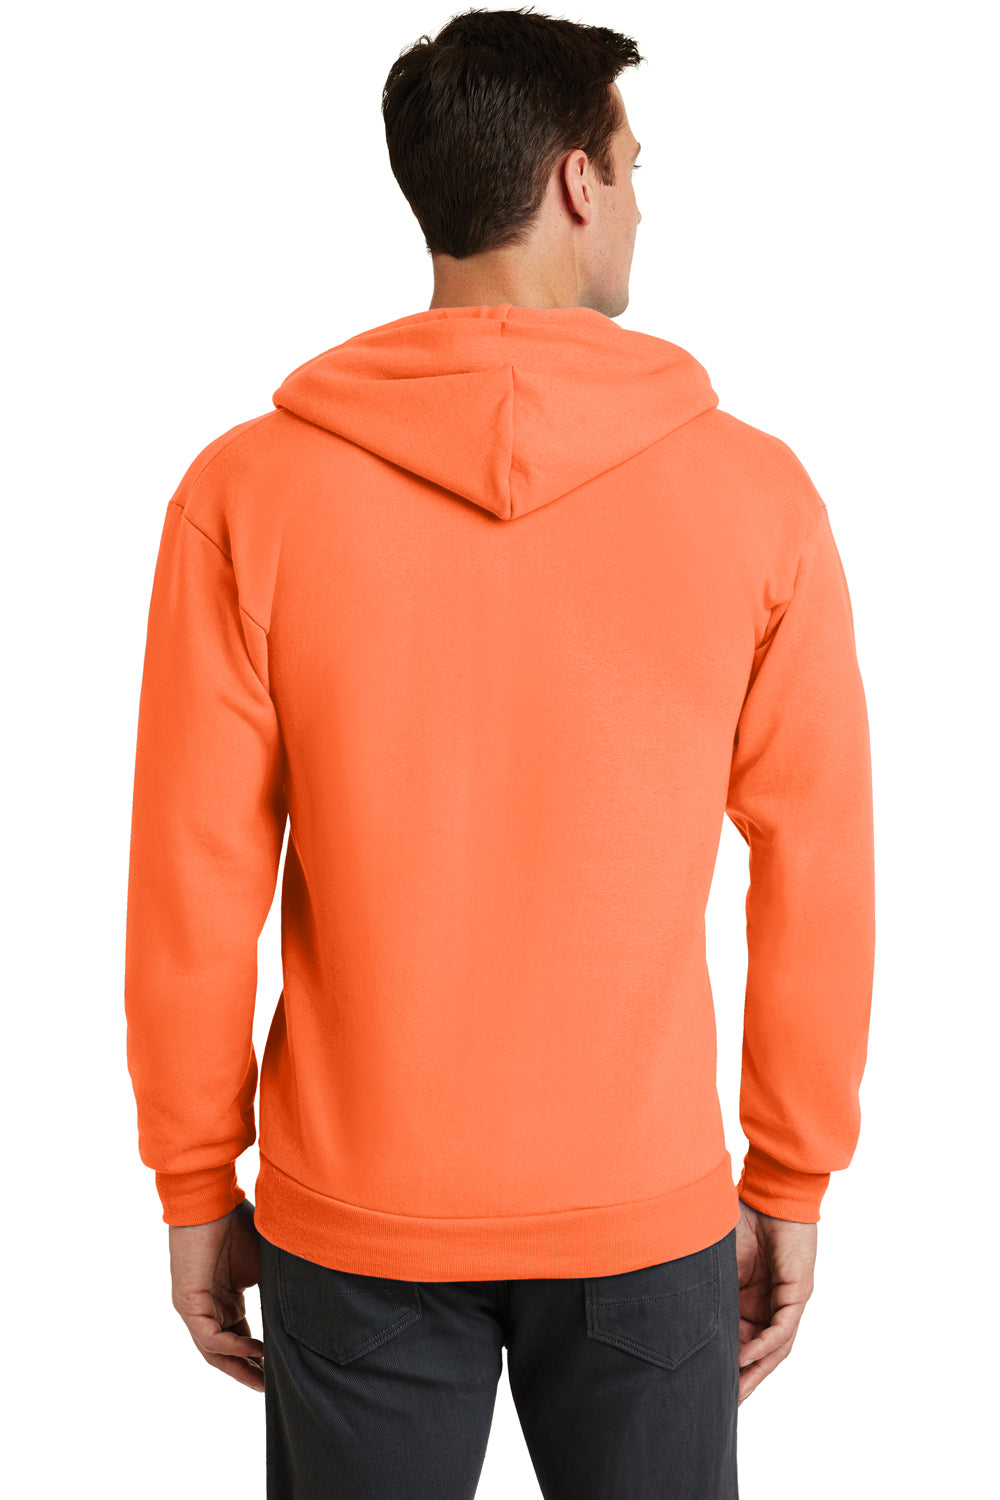 Port & Company PC78ZH Mens Core Fleece Full Zip Hooded Sweatshirt Hoodie Neon Orange Back